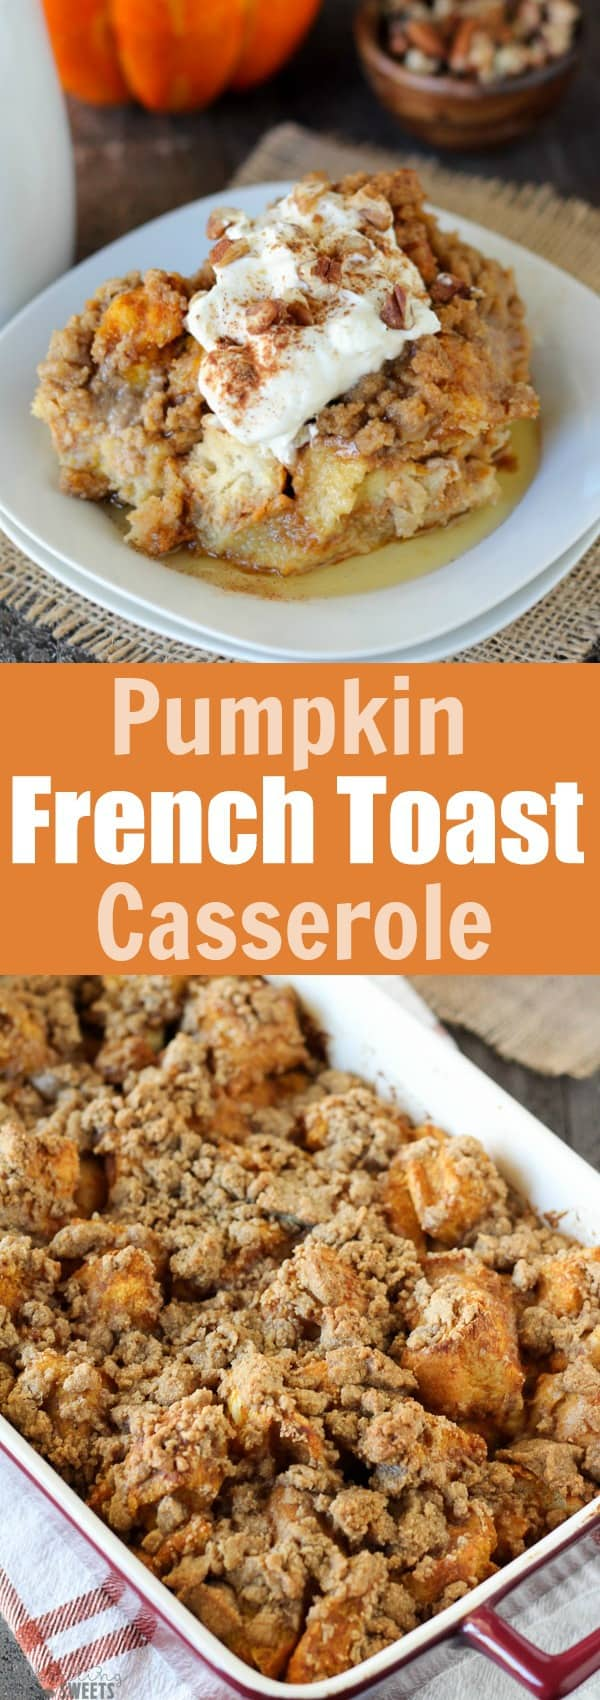 Pumpkin french toast casserole.